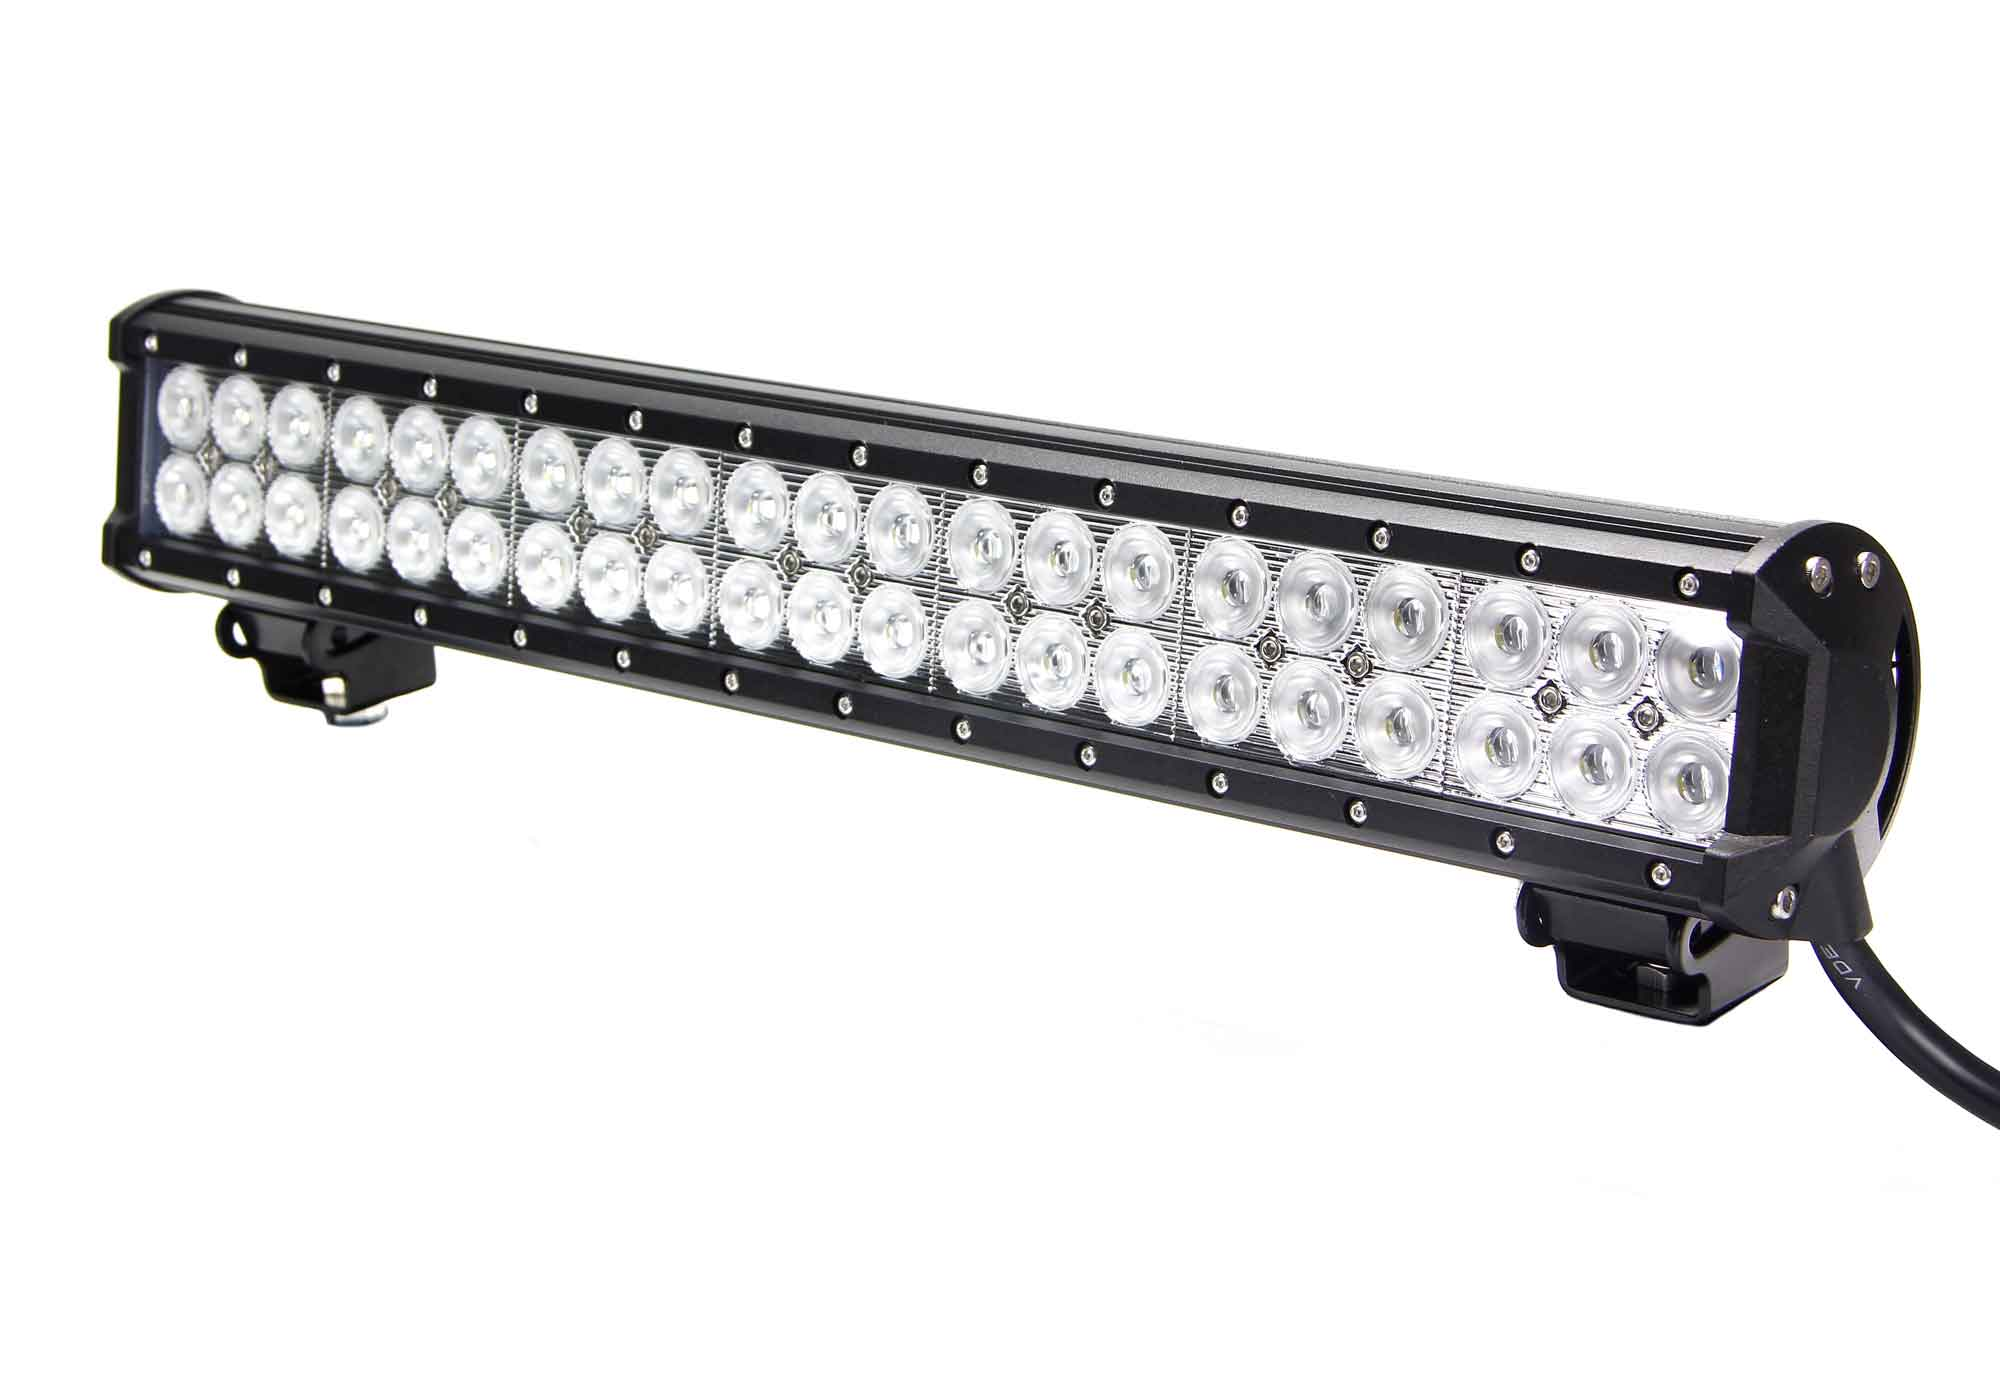 Vortex Series Led Light Bar